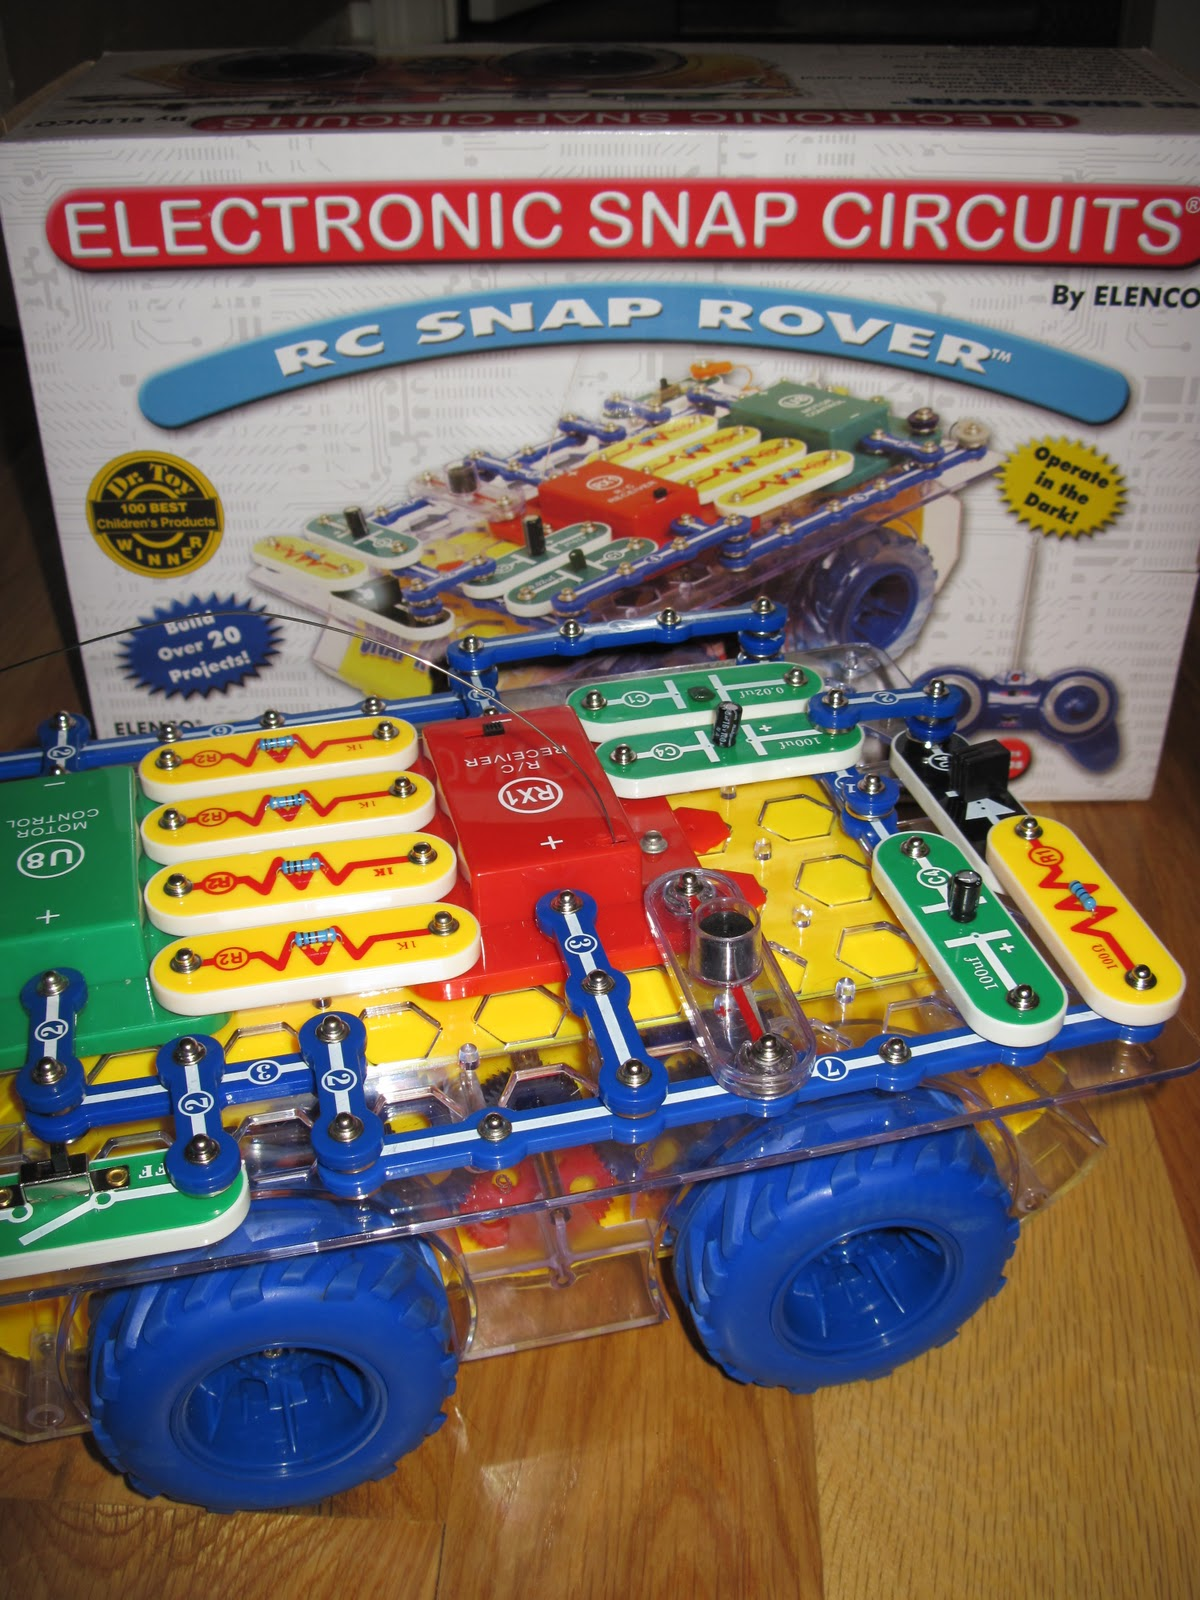 Haigh Happenings January 2011 Snap Circuits Rc Rover Heres Is One Of Aliahs Favorite Christmas Gifts A It Similar To Her Other Circuit Set But This Actually Remote Control Car